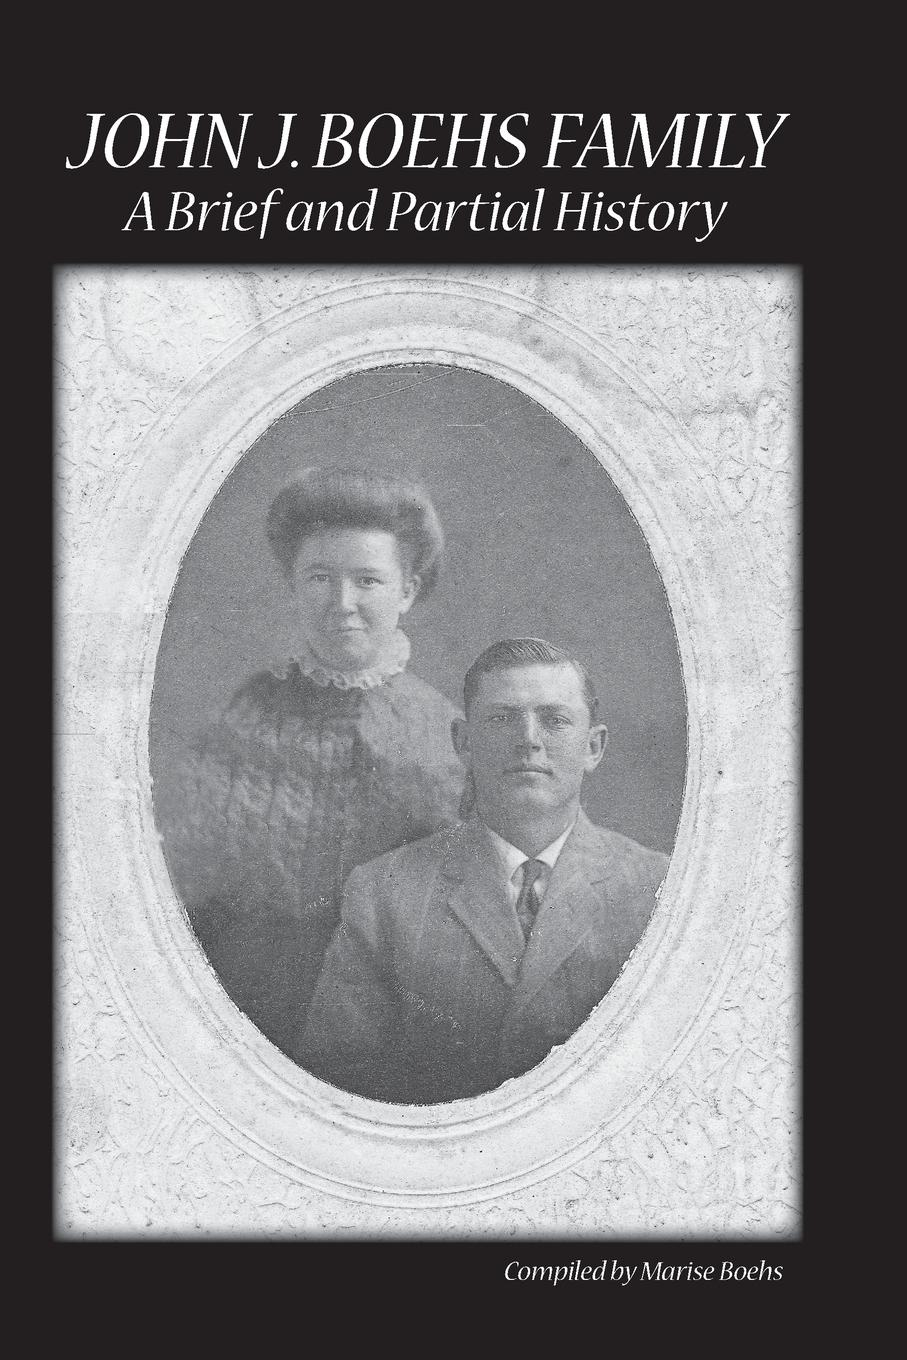 Marise Boehs Boehs Family 2016 john maclean the parochial and family history of the deanery of trigg minor cornwall